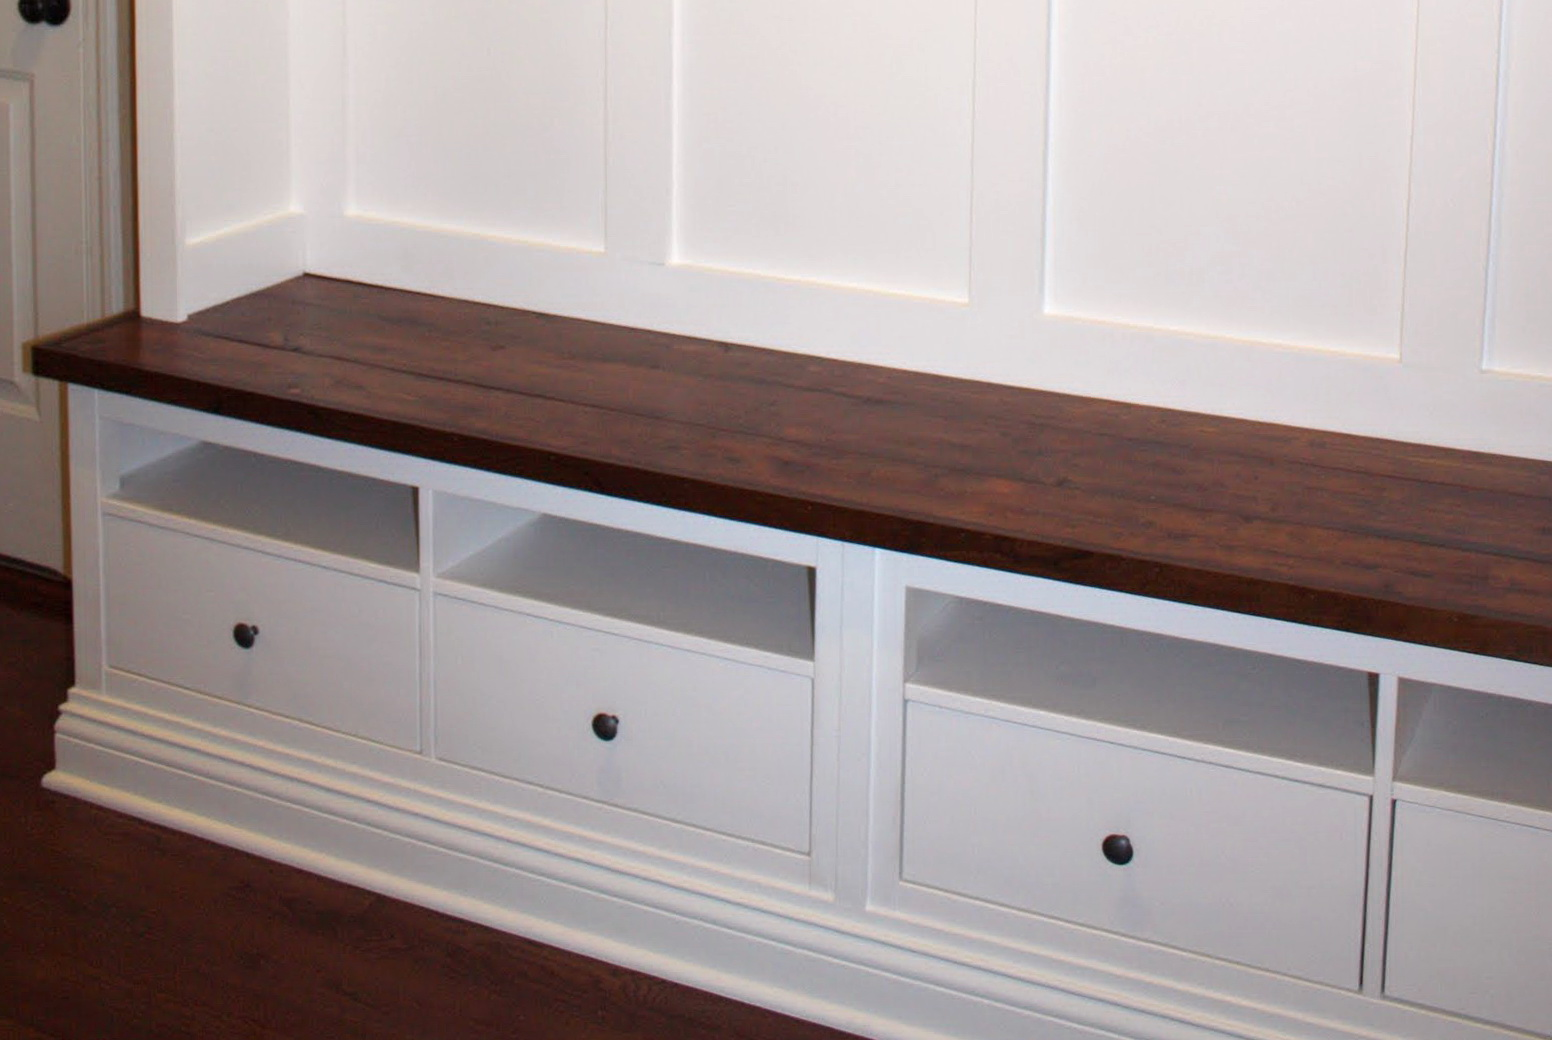 Foyer Seating : Entryway bench ikea hack home design ideas